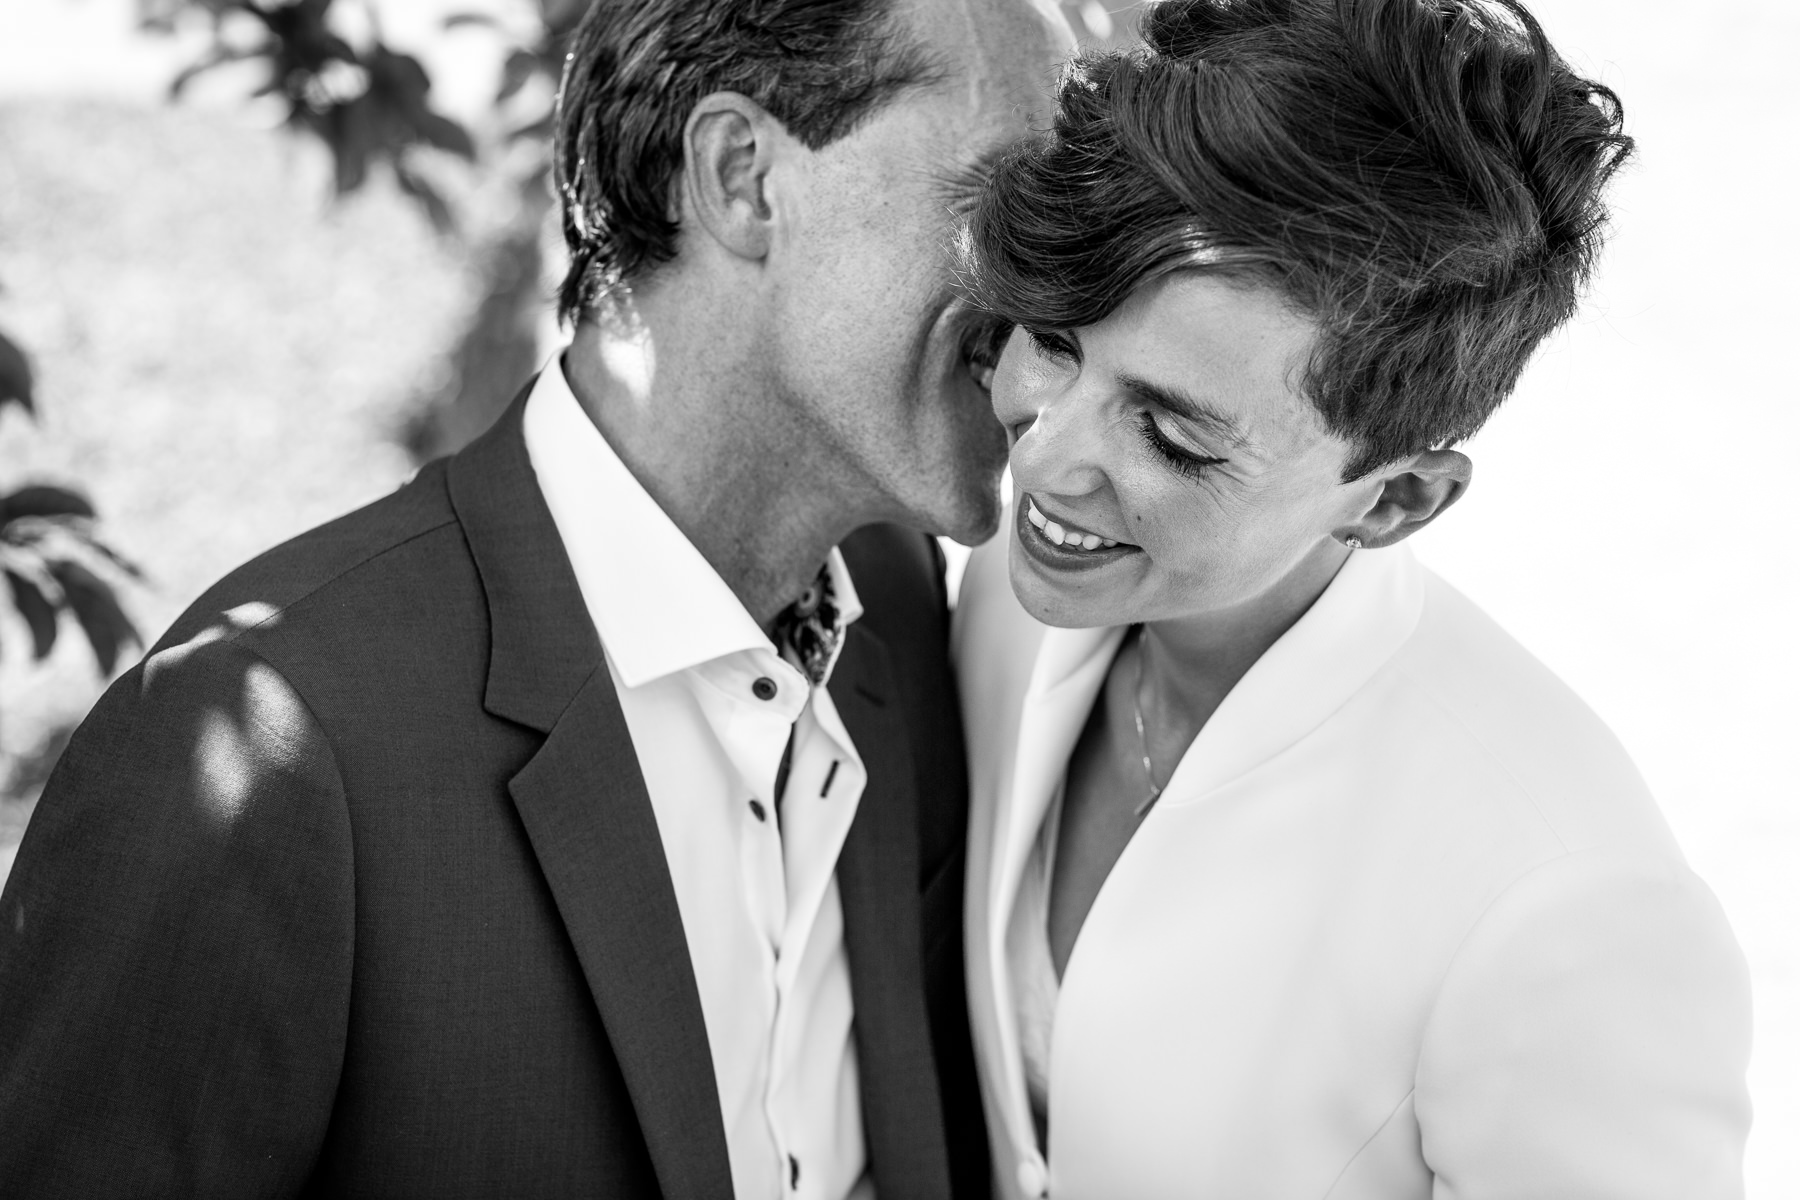 bride groom close-up portrait black&white image smiling embrace natural authentic documentary wedding photo bride groom couple beaverbrook surrey hills leatherhead register office wedding photographer